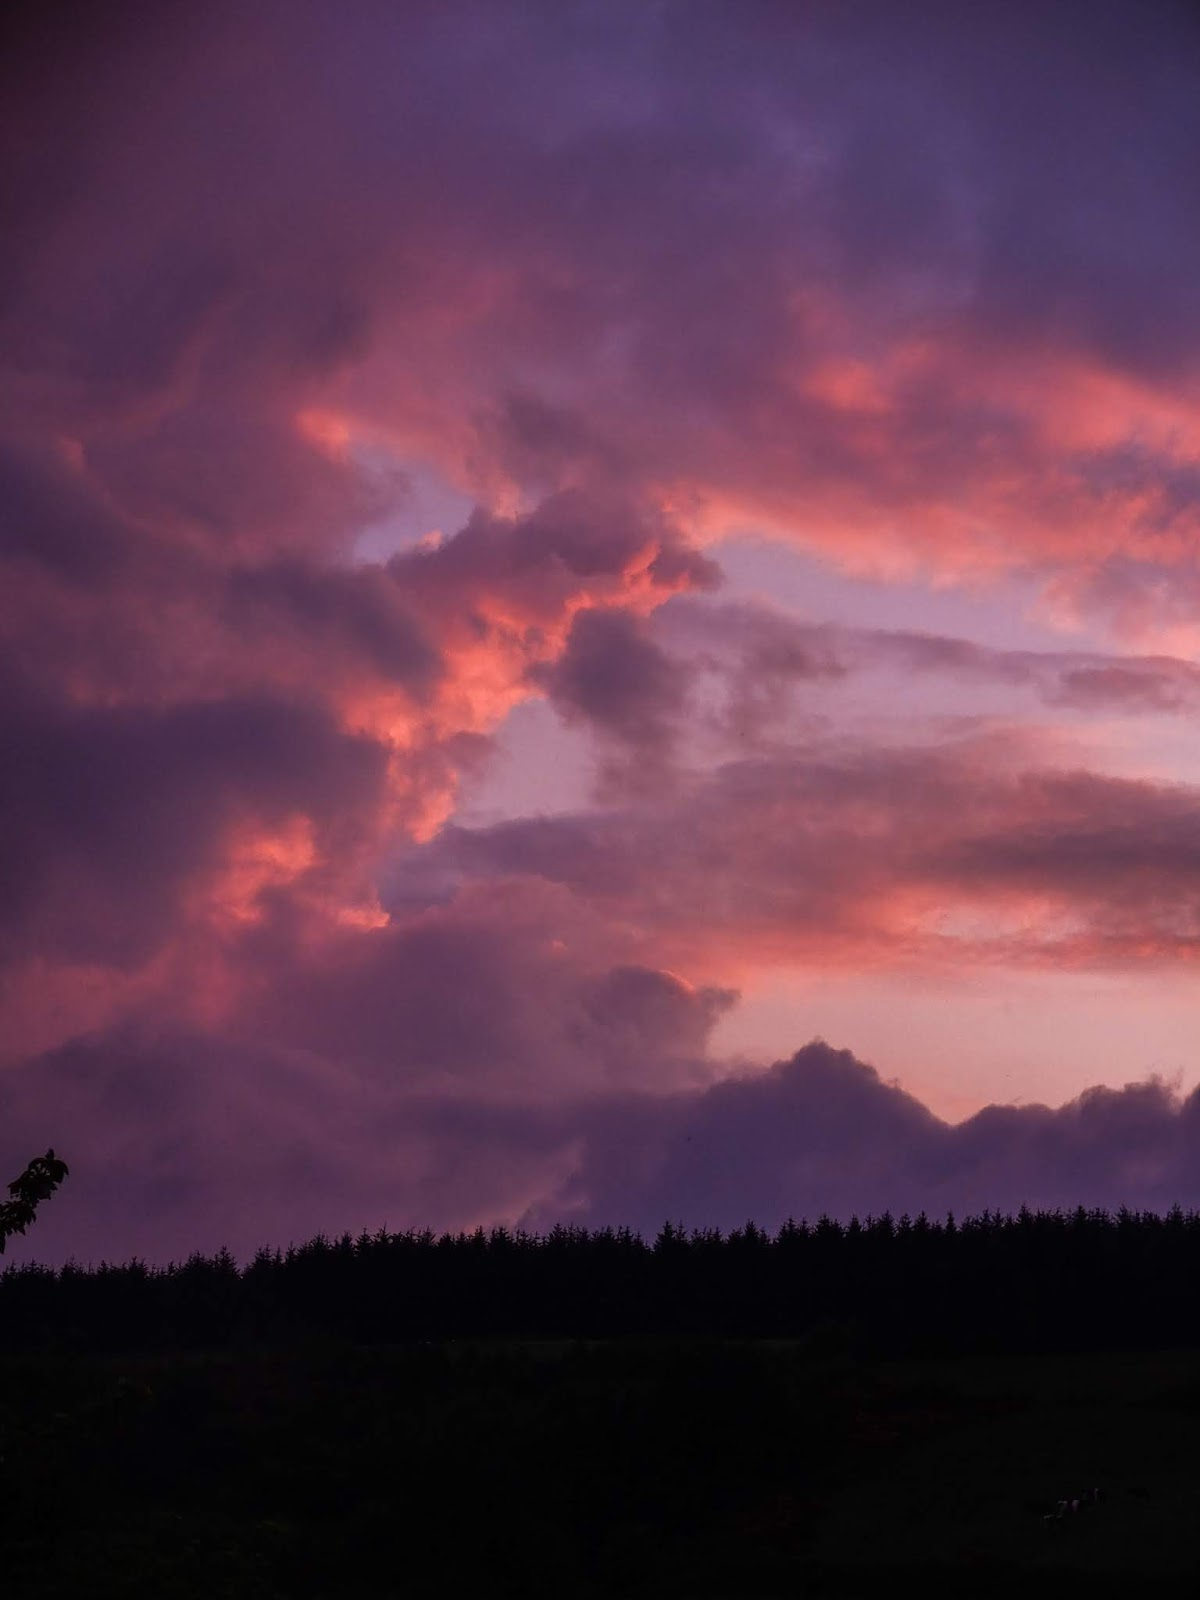 Big and fluffy pink and purple clouds at sunset over a forestry on a mountain top in Co.Cork, Ireland.